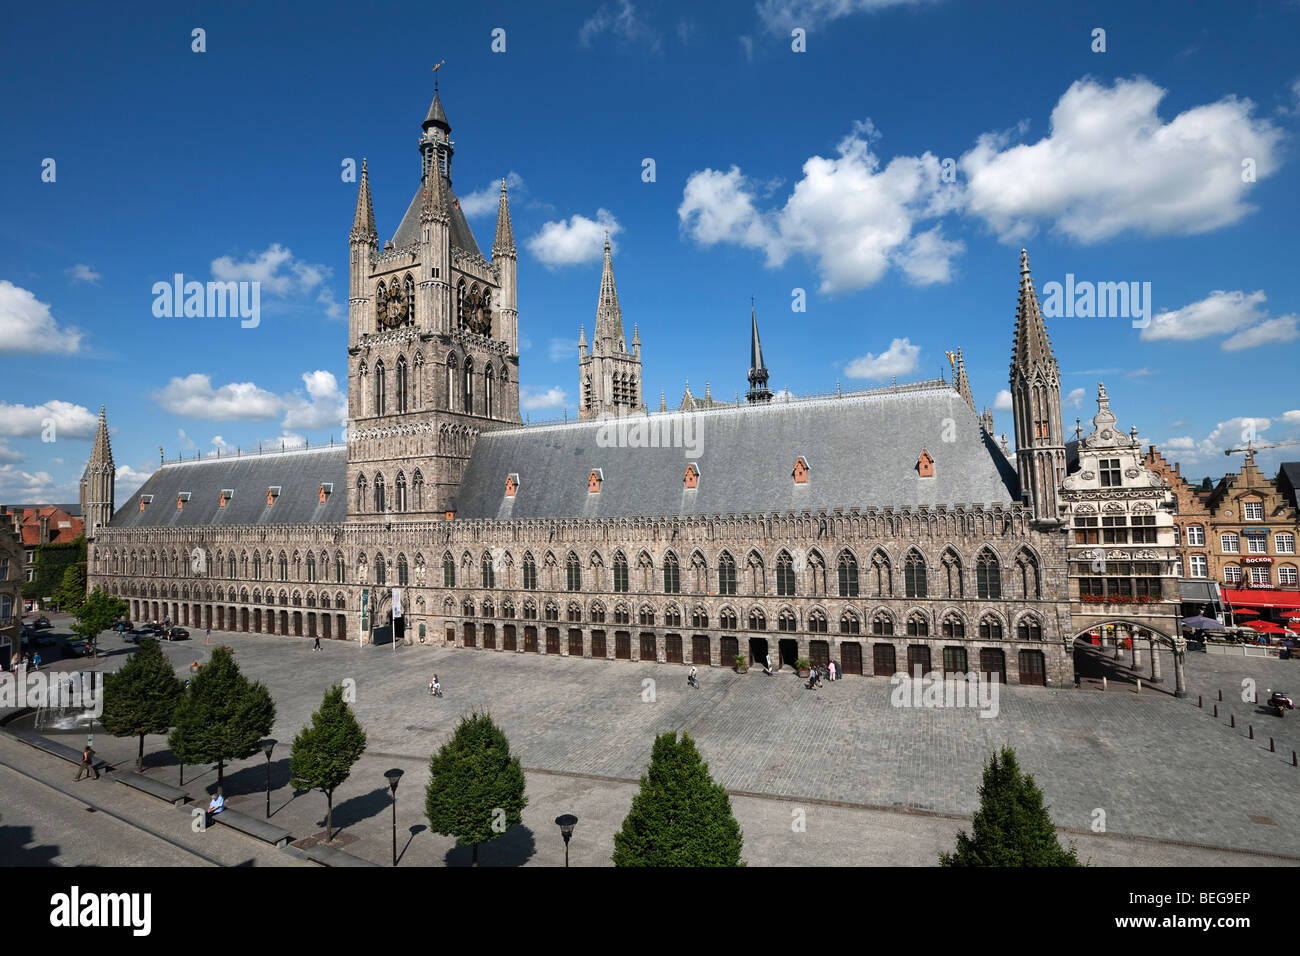 The Cloth Halls in the Grote Markt Albert 1. - Stock Image